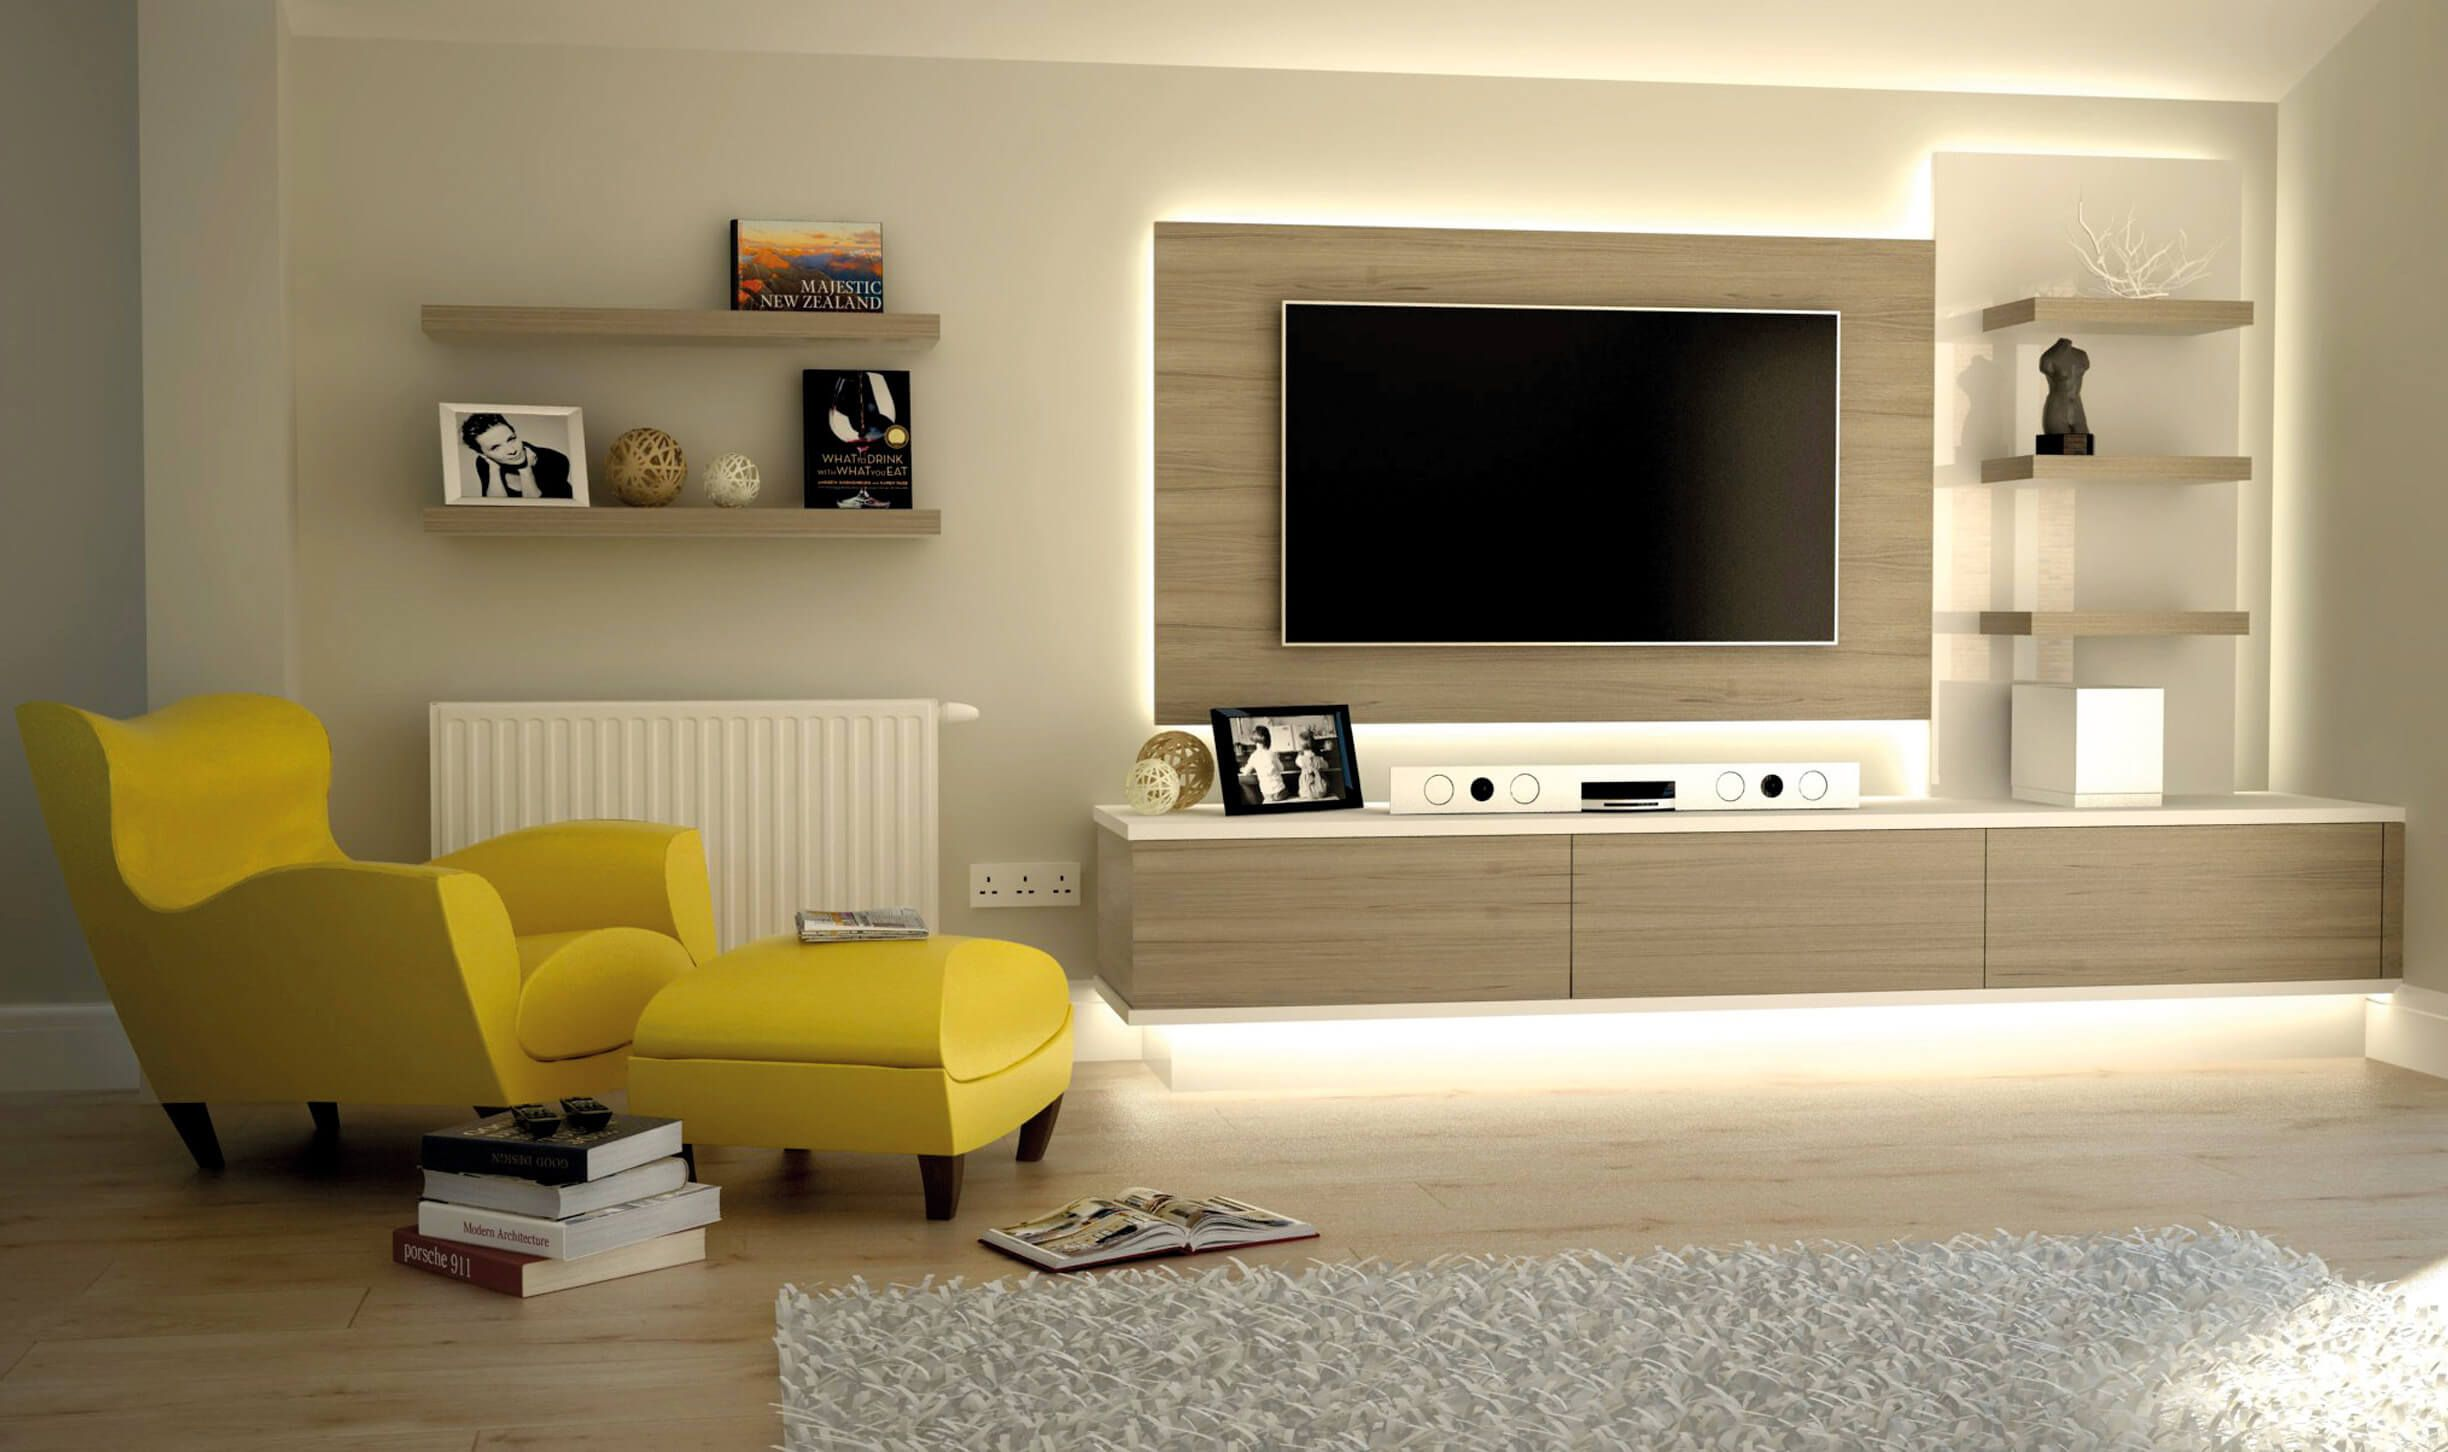 TV Room in Floor Lighting - Bespoke TV cabinets, bookcases and storage units For over Room in Floor Lighting